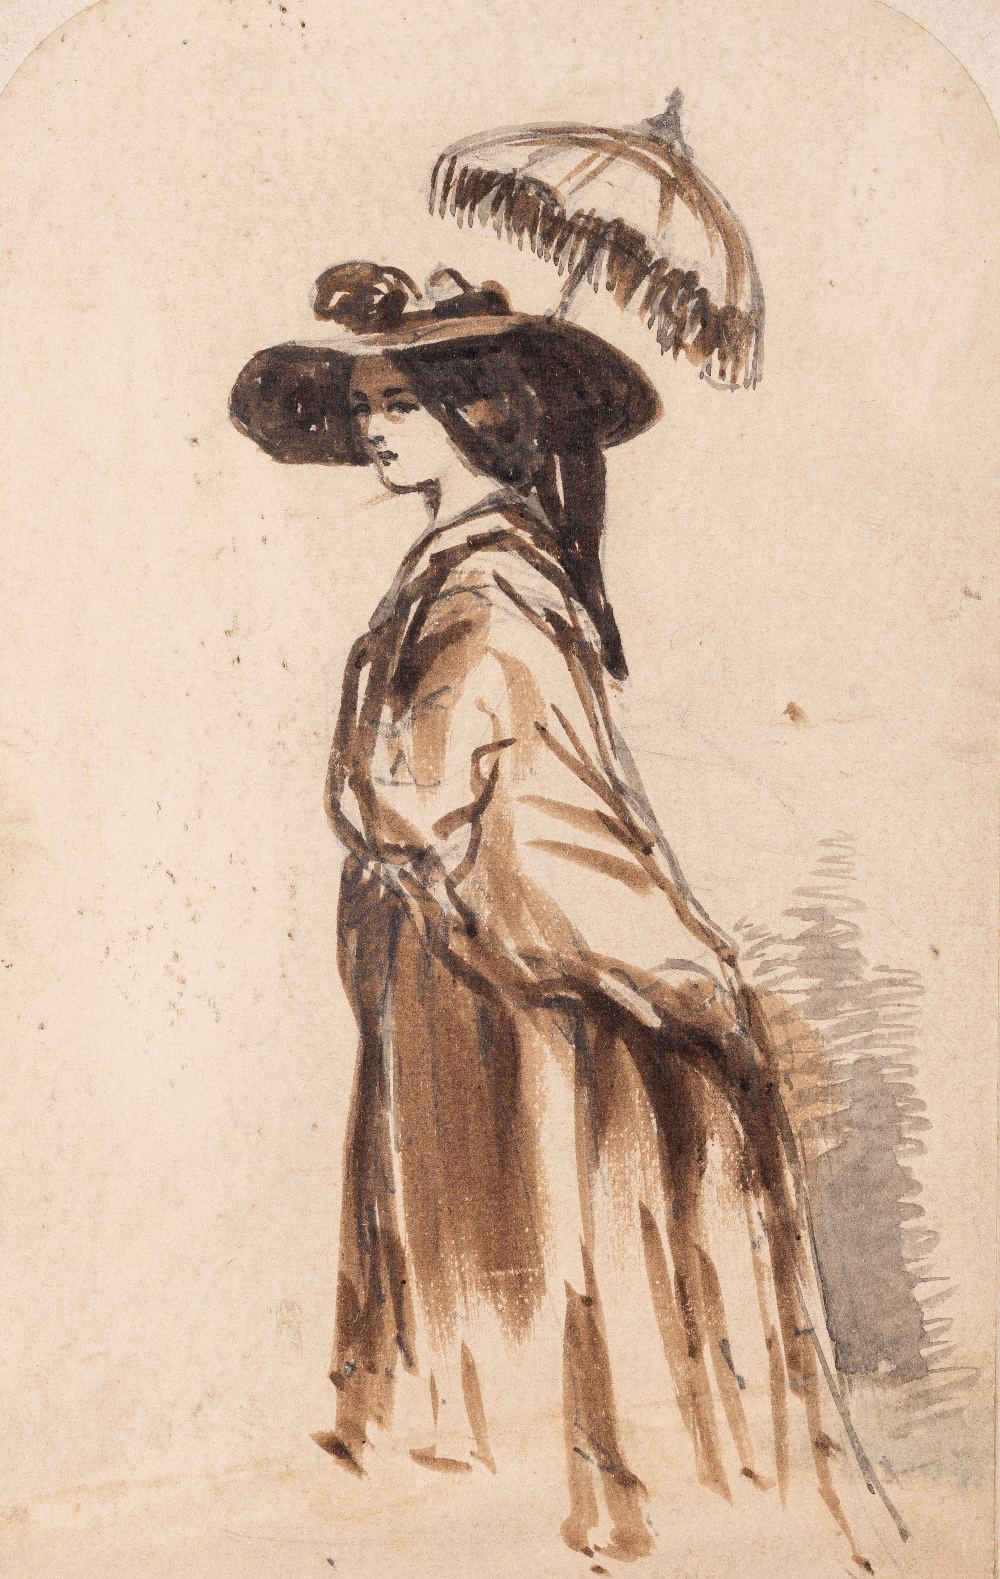 Lot 35 - ATTRIBUTED TO CONSTANTIN GUYS (1802-1892) A LADY WITH A PARASOL india ink, pencil & wash 12.4 x 7.